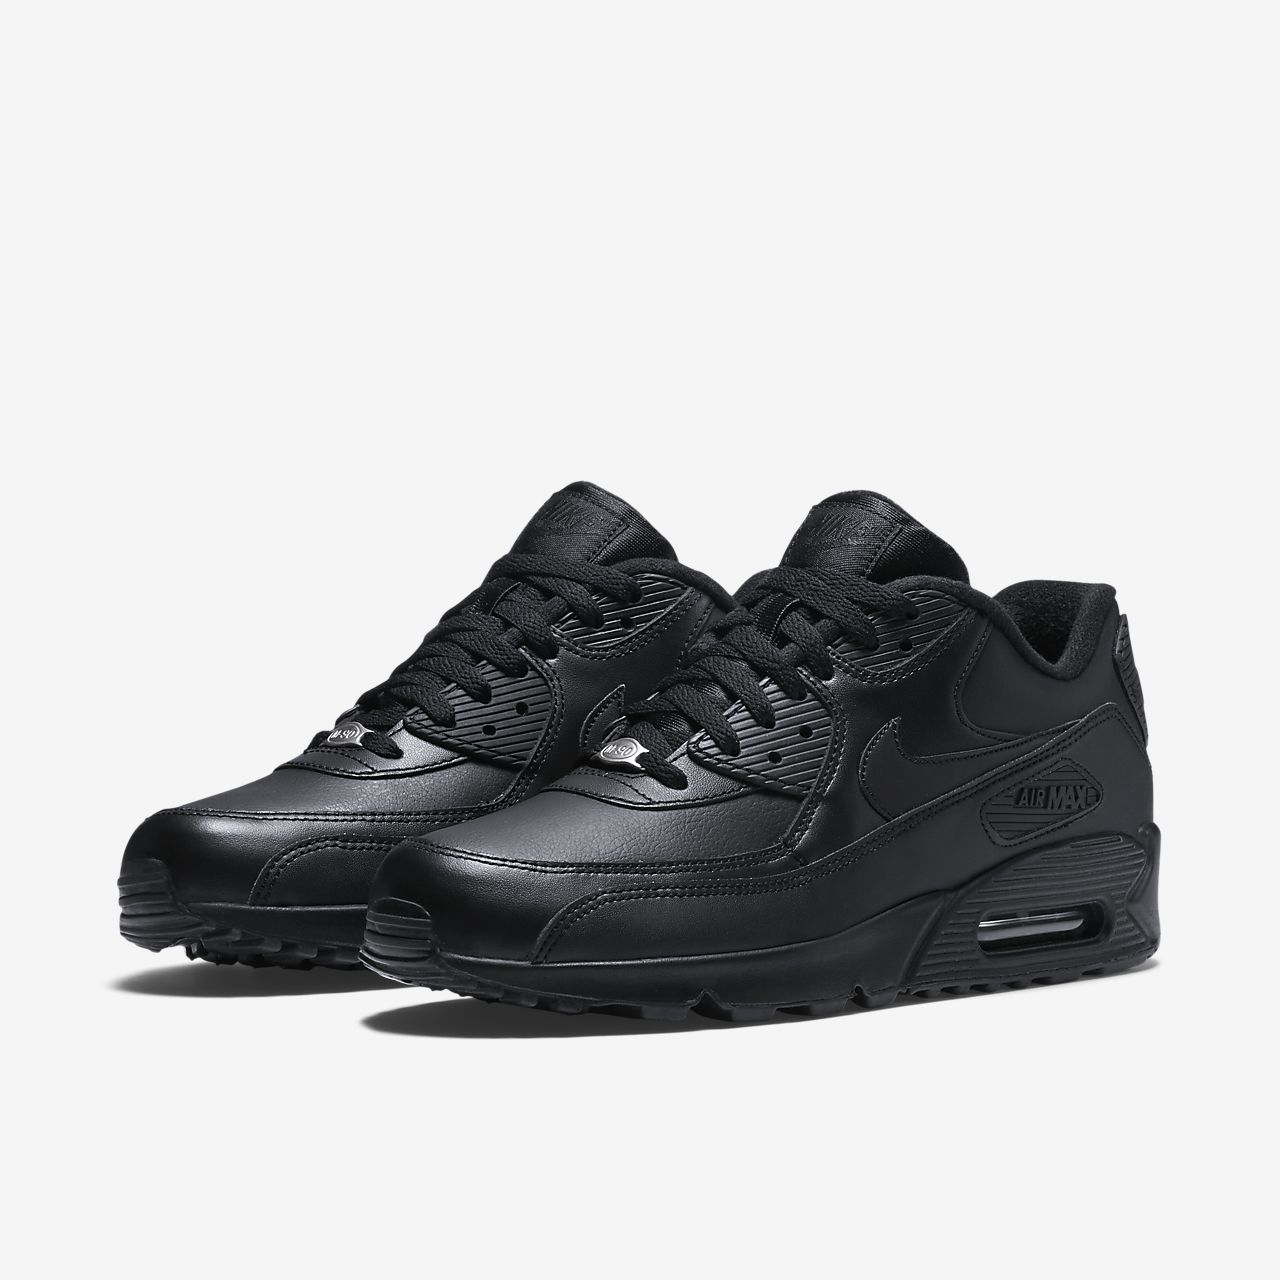 nike air max all black 90